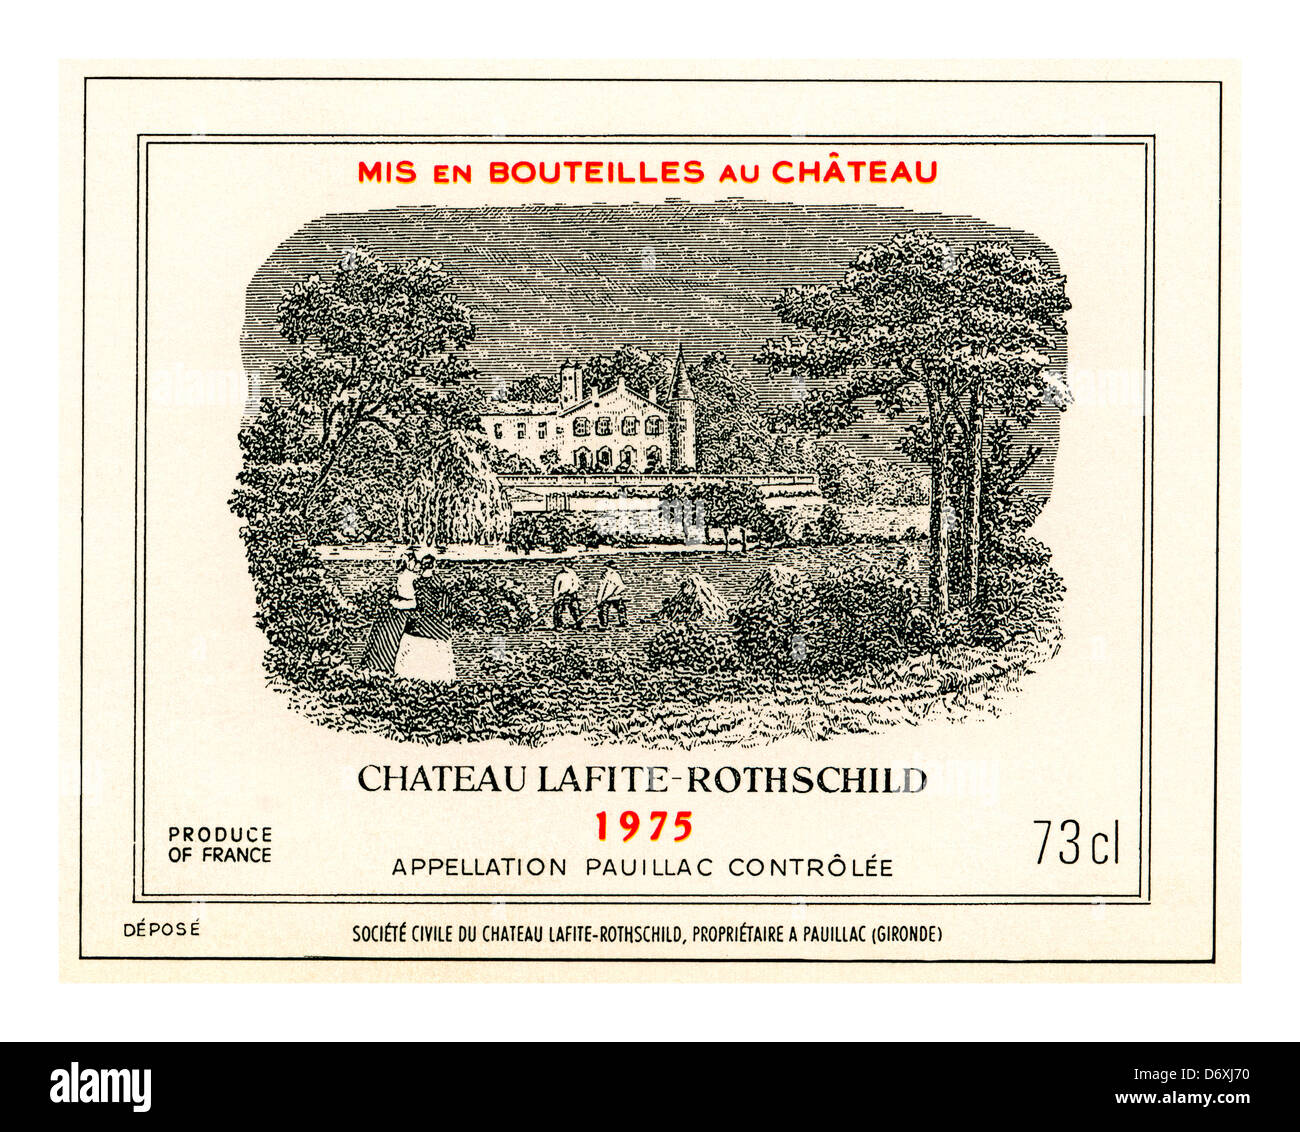 Chateau Lafite-Rothschild 1975 fine red wine bottle label Pauillac Medoc Gironde Bordeaux France - Stock Image